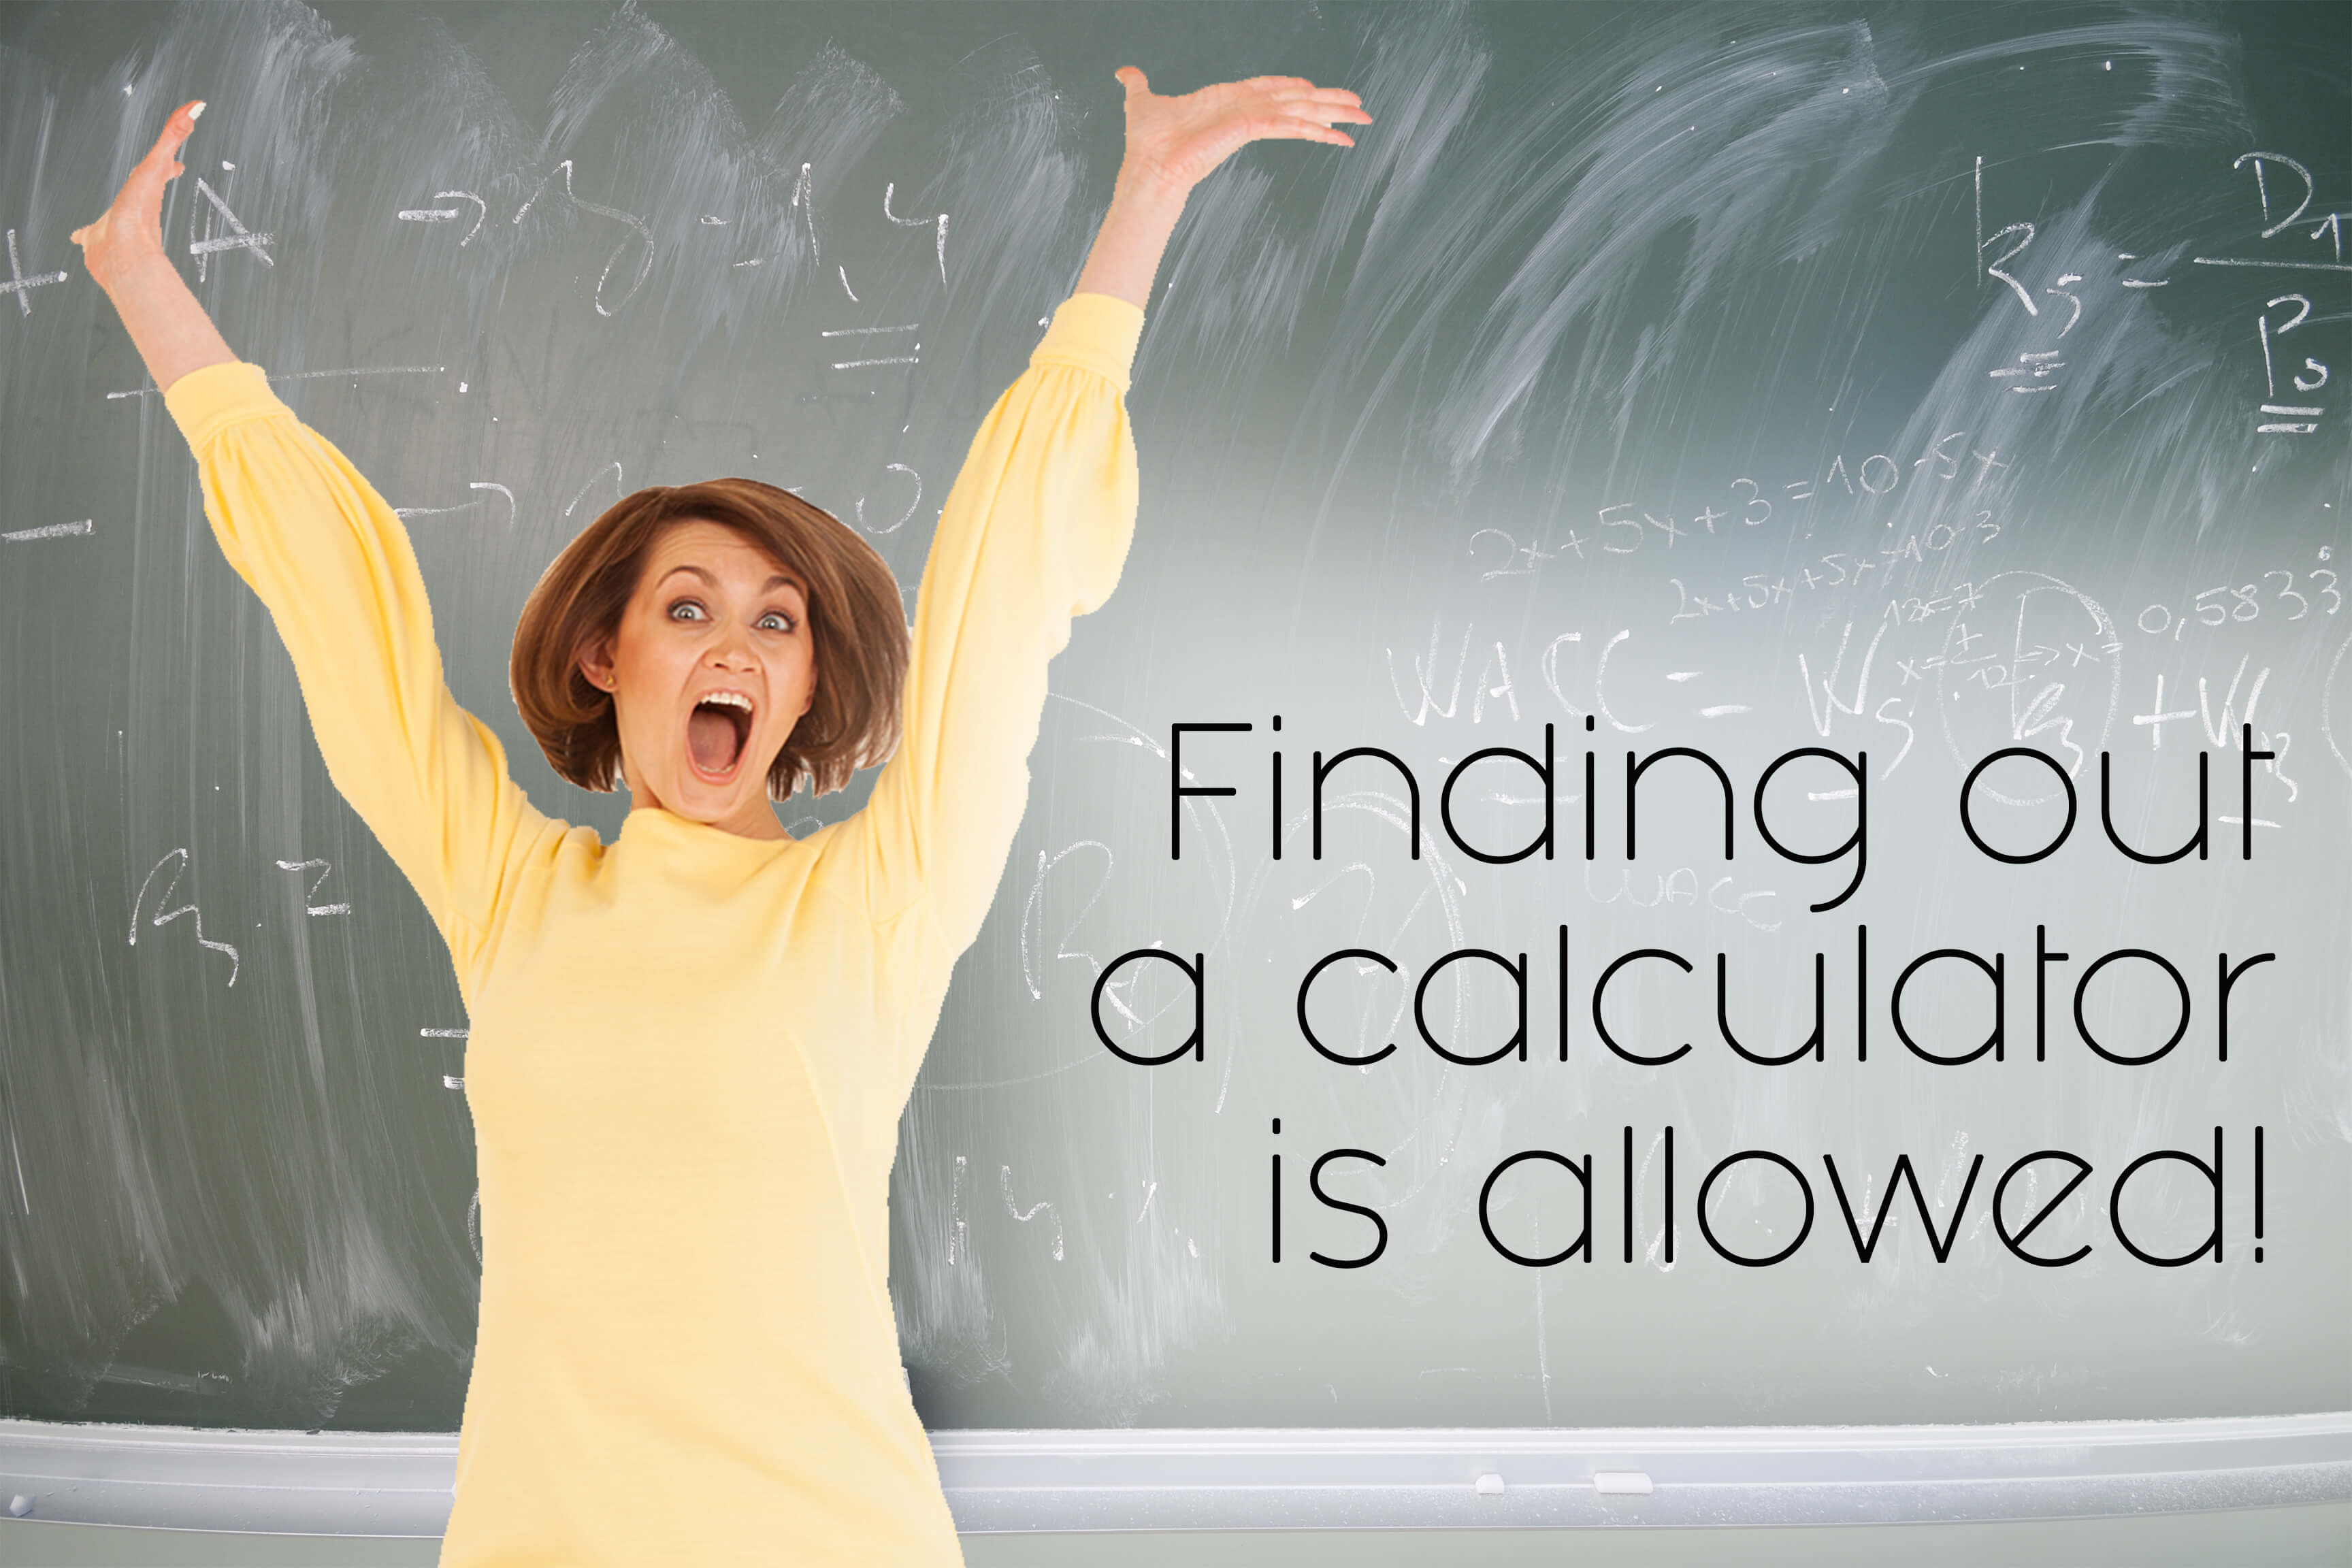 9. Finding out a calculator is allowed!